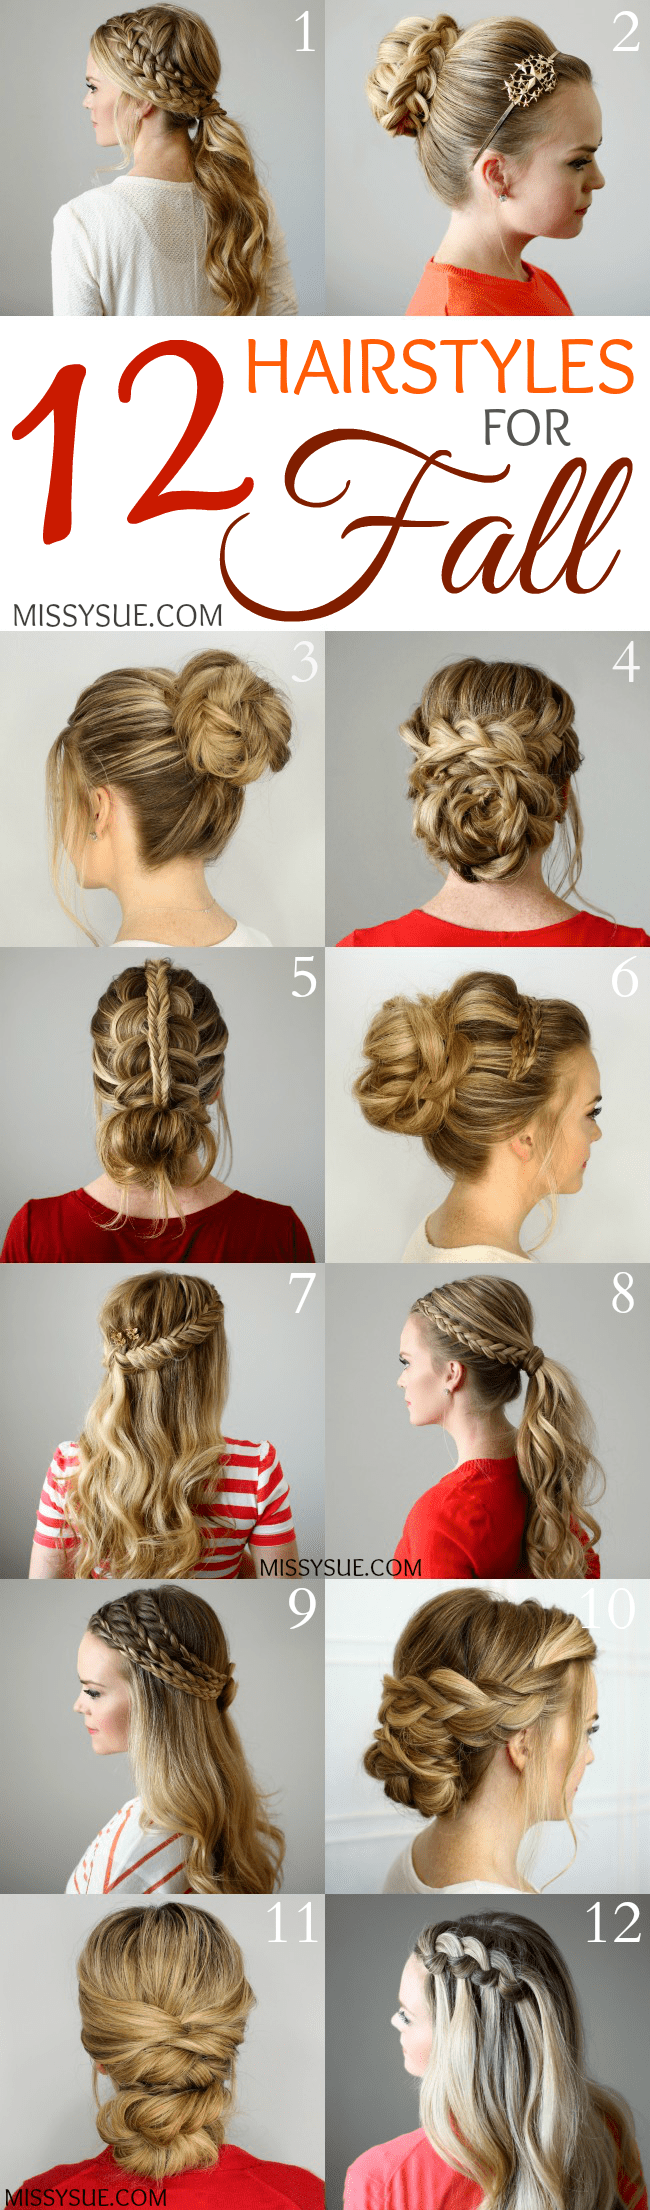 12 Hairstyles for Fall